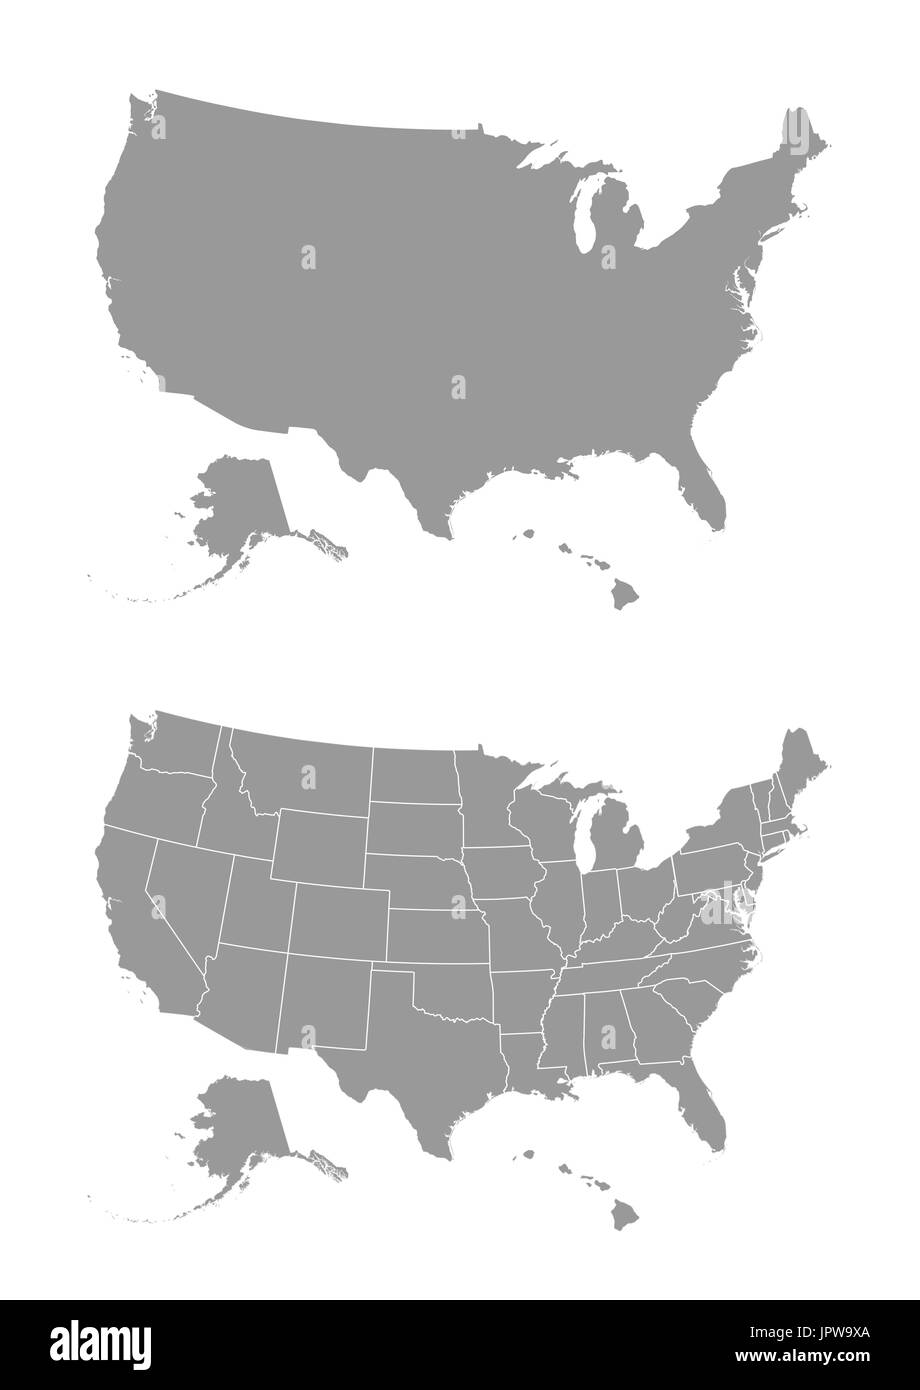 Vector map of the United States of America Stock Vector